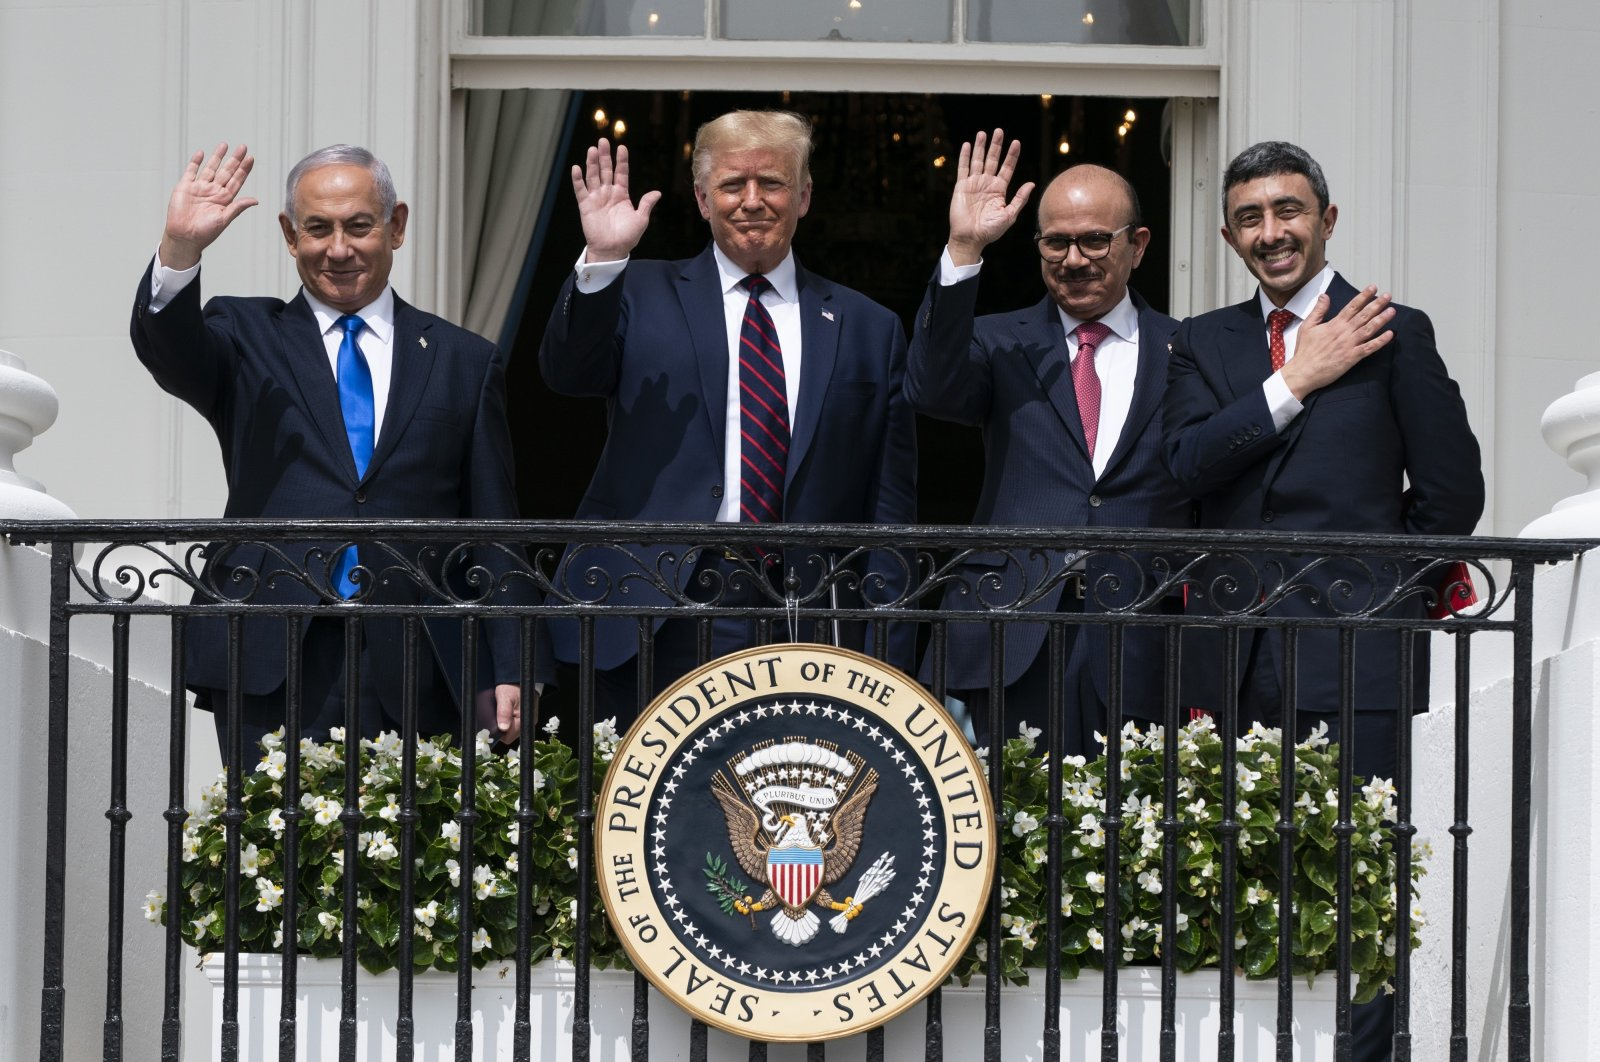 (From L to R) Israeli Prime Minister Benjamin Netanyahu, U.S. President Donald Trump, Bahrain Foreign Minister Khalid bin Ahmed al Khalifa, and United Arab Emirates Foreign Minister Abdullah bin Zayed Al Nahyan pose for a photo on the Blue Room Balcony after signing the Abraham Accords during a ceremony on the South Lawn of the White House in Washington, Sept. 15, 2020. (AP)